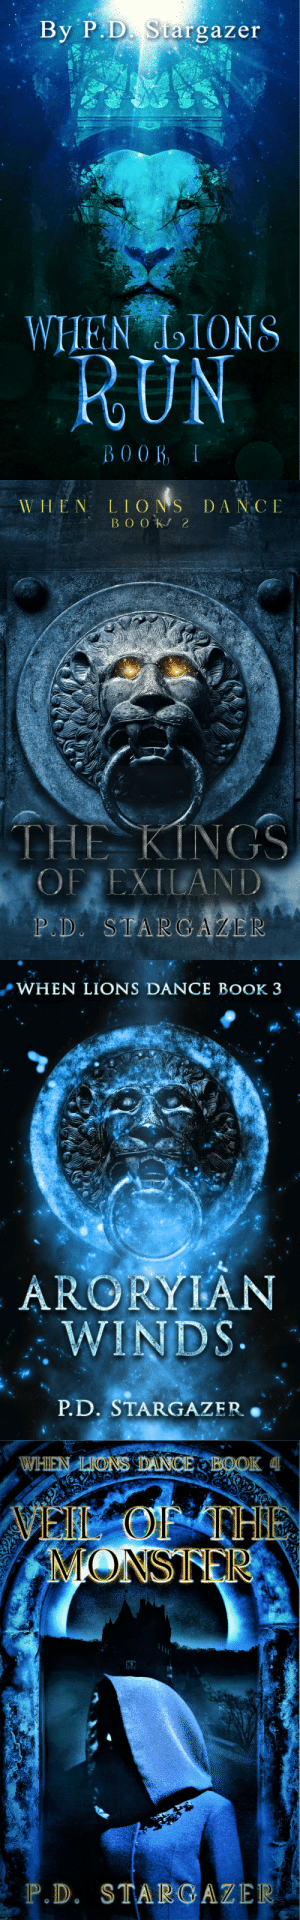 epicdndmemes: P.D. STARGAZER -   The Lions of Lapuslandee ebooks - FOR FREE!   In the warring lands of Lapuslandee, the remnant of three royal families flee together and survive. Isolating themselves in a wilderness, and small in number, they are blessed with unequaled wealth. Then nature grants the most magnificent gift of all. There are six books telling how the TowHummy outwit their enemies and their enchanted environment. : epicdndmemes: P.D. STARGAZER -   The Lions of Lapuslandee ebooks - FOR FREE!   In the warring lands of Lapuslandee, the remnant of three royal families flee together and survive. Isolating themselves in a wilderness, and small in number, they are blessed with unequaled wealth. Then nature grants the most magnificent gift of all. There are six books telling how the TowHummy outwit their enemies and their enchanted environment.